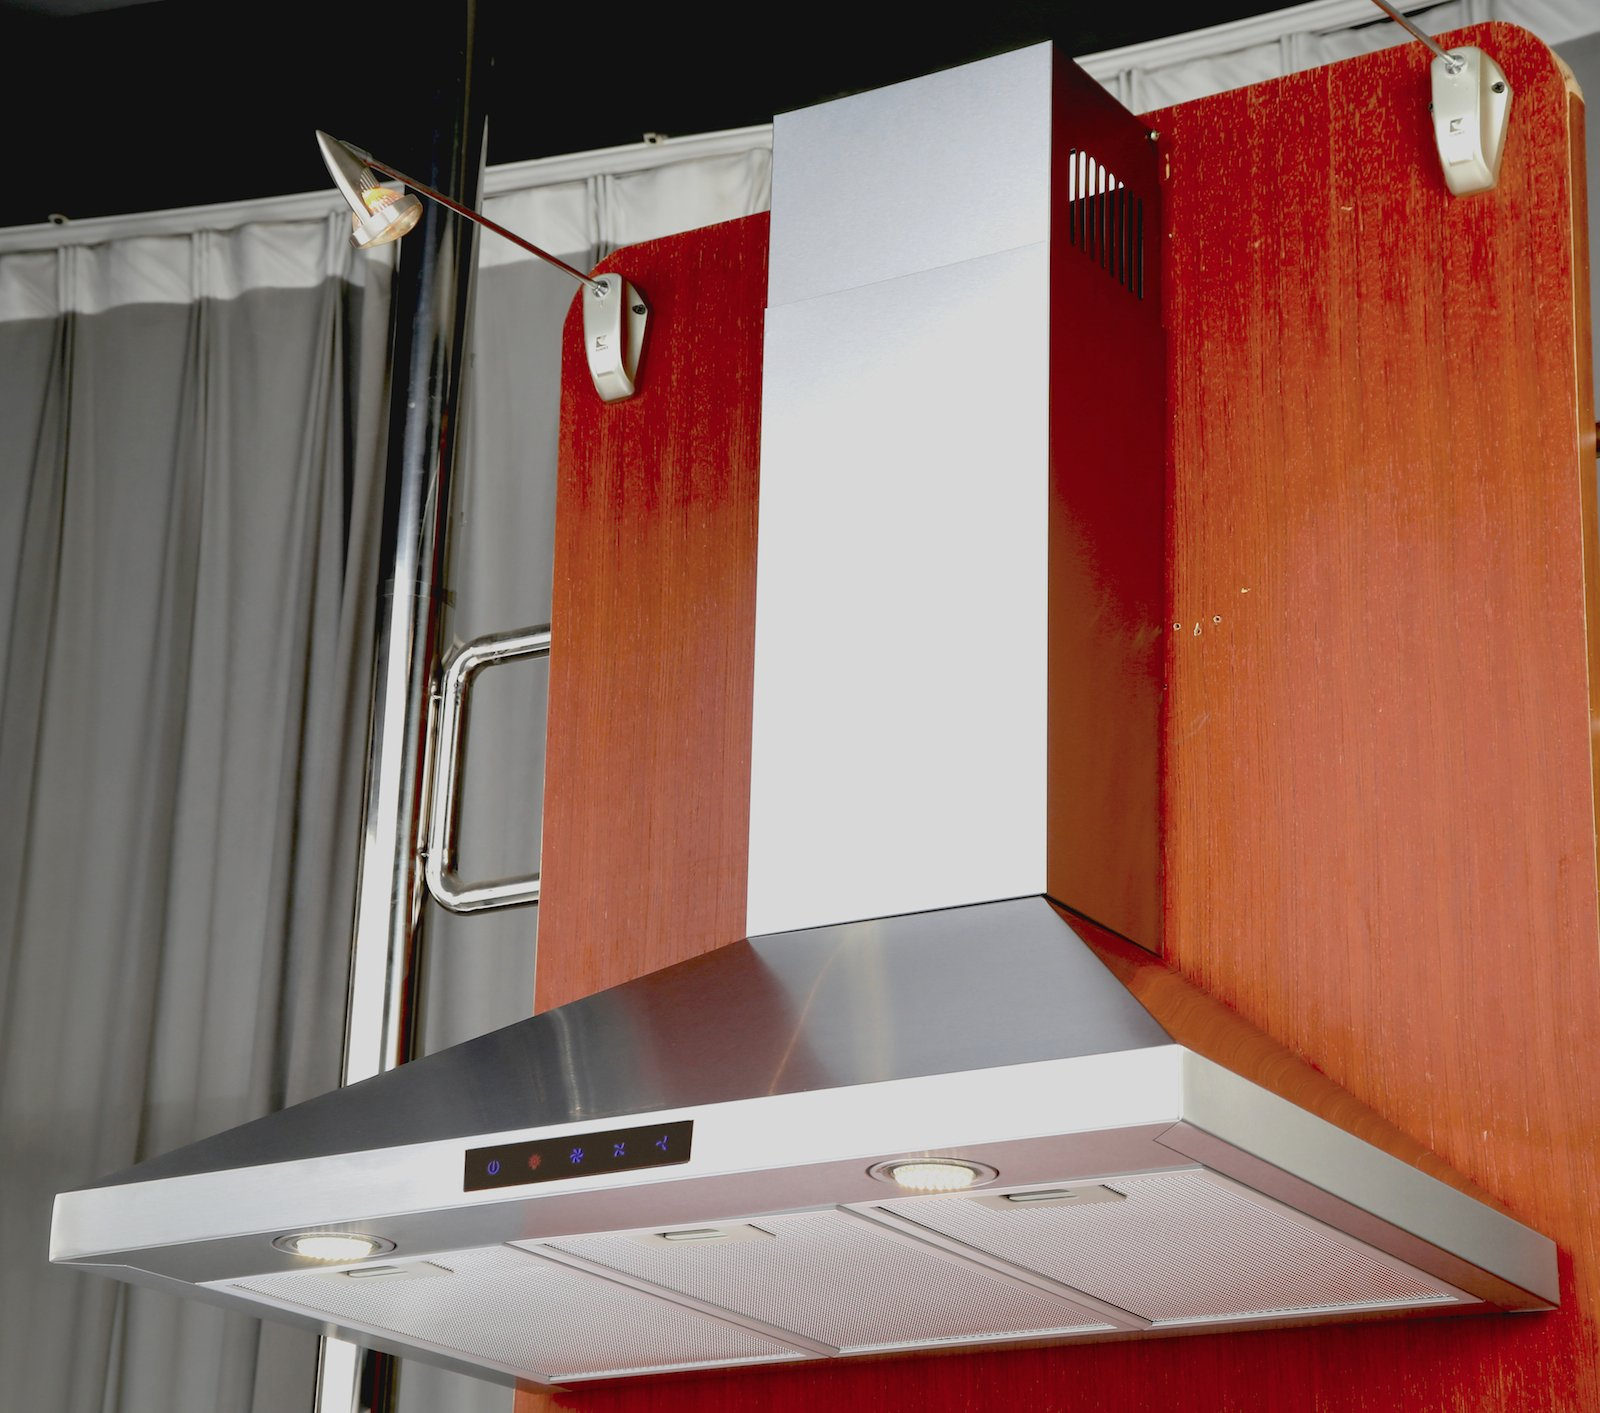 Kitchen Bath Collection STL75-LED Stainless Steel Wall-Mounted Kitchen Range Hood with High-End LED Lights, 30'' by Kitchen Bath Collection (Image #2)